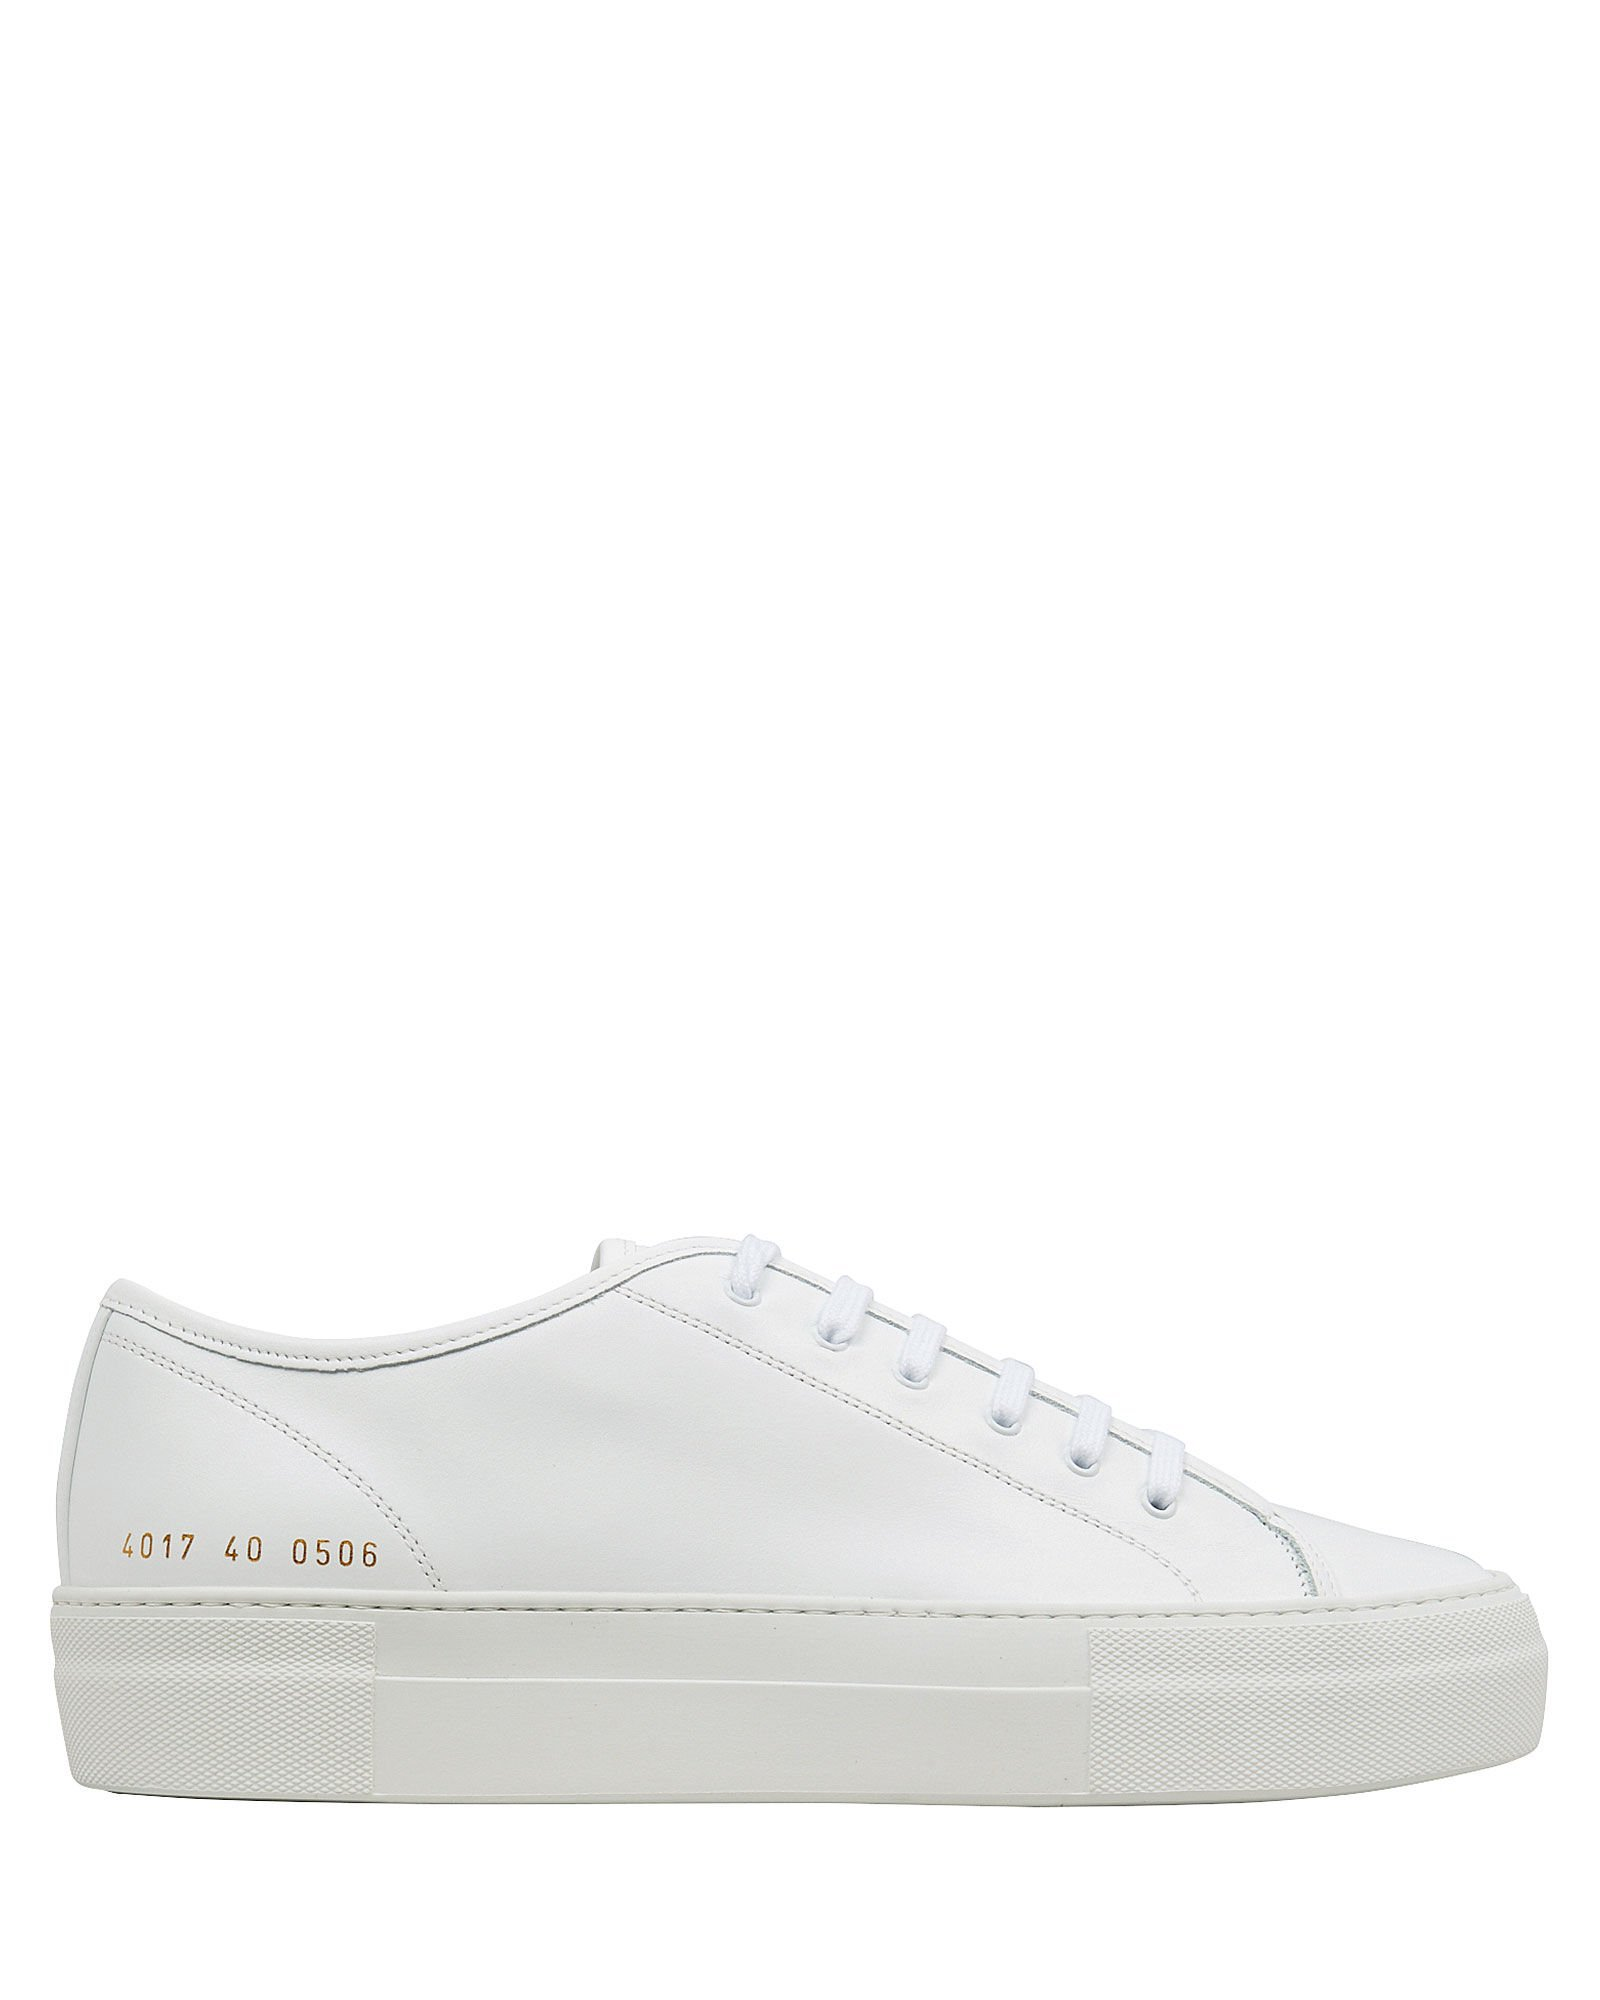 Common Projects | Tournament Super Sneakers | INTERMIX®